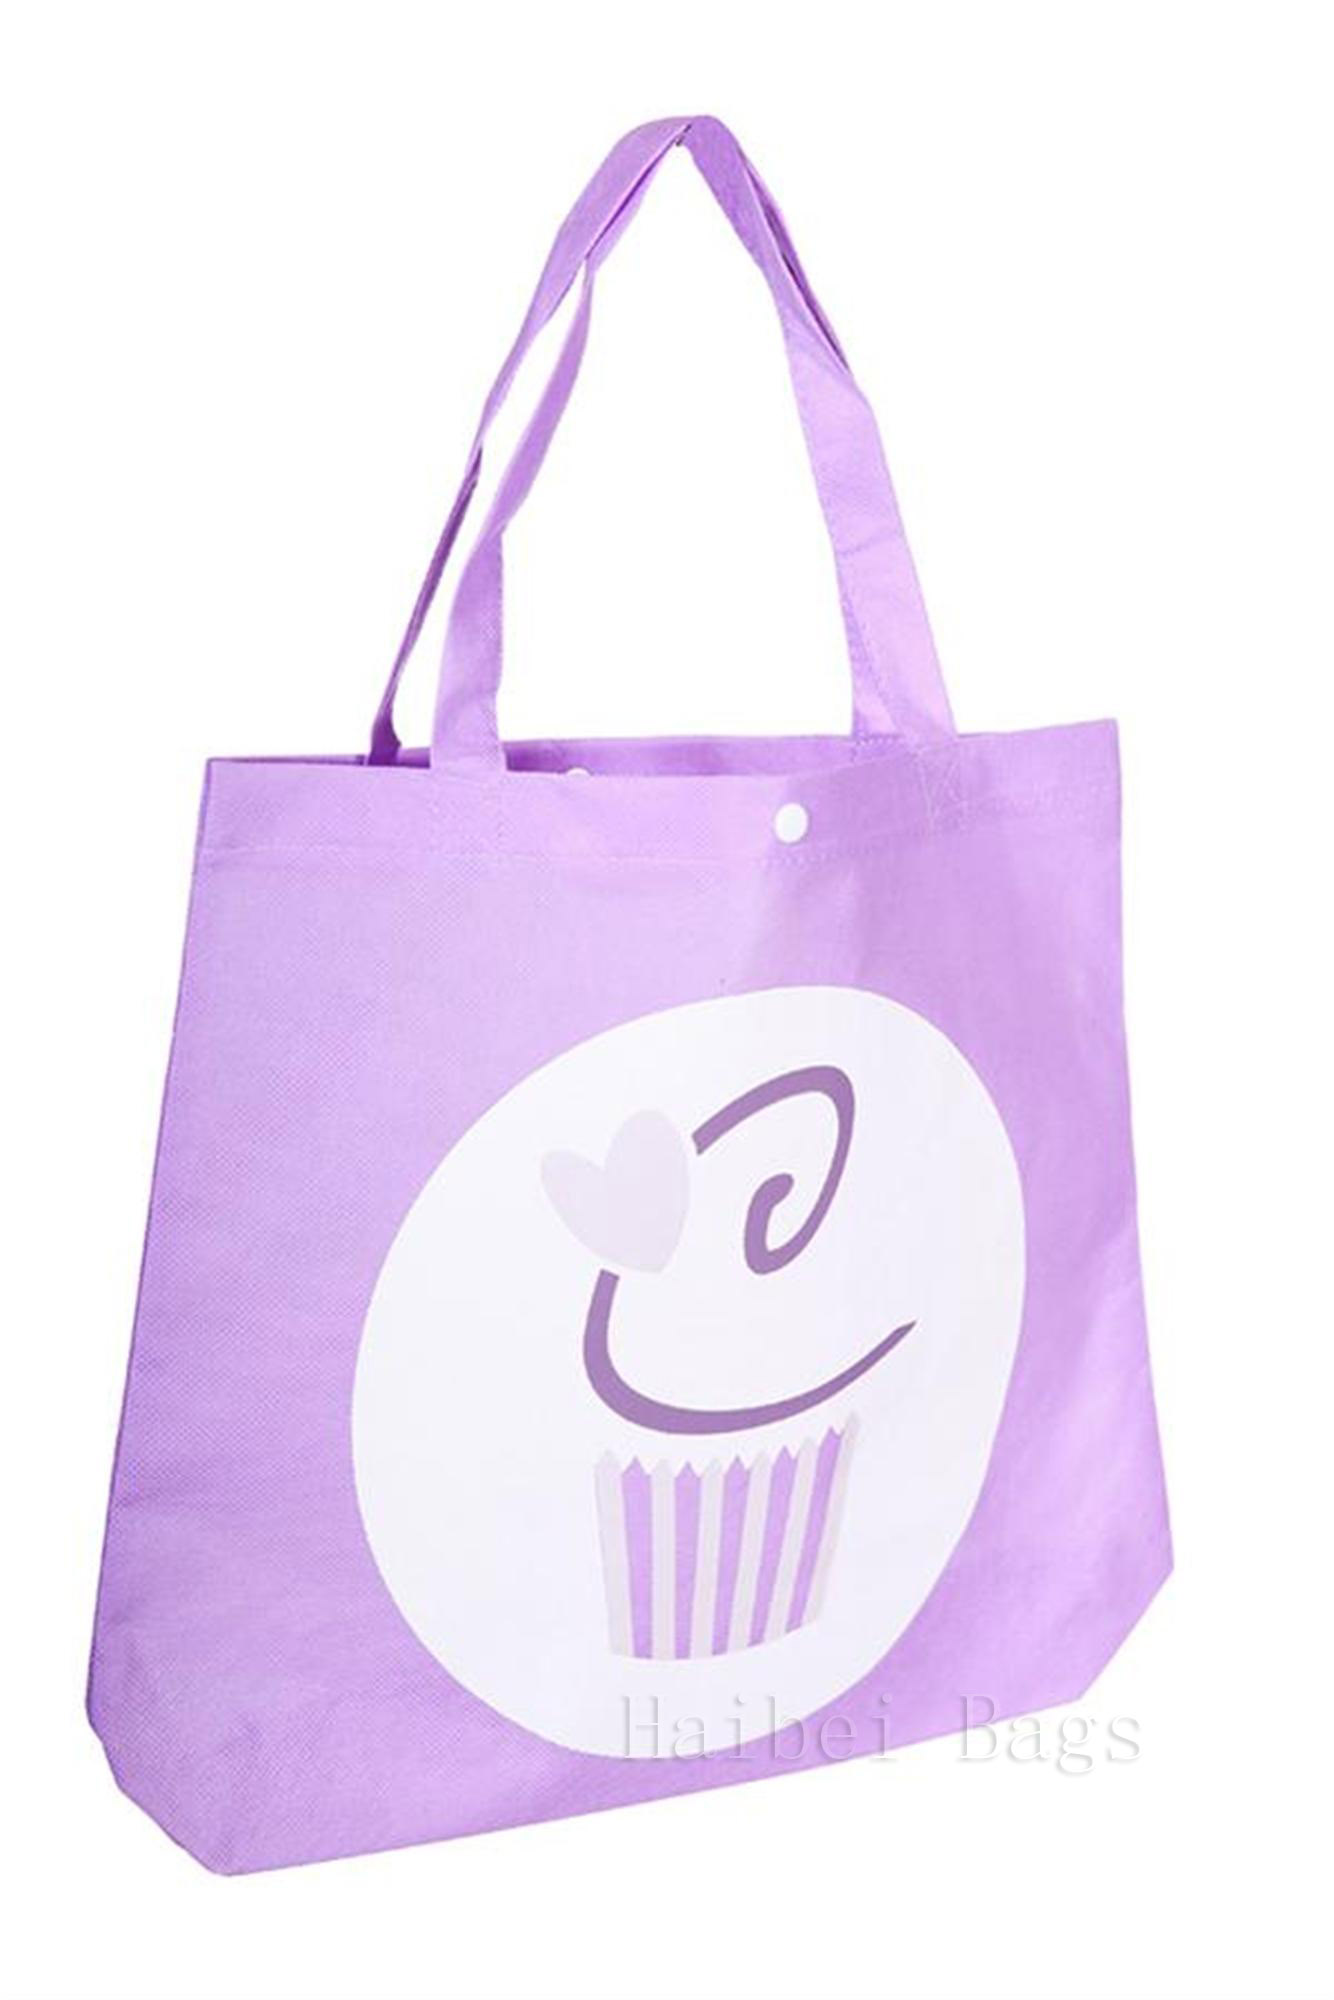 Promotion Fashion Tote Bag with Bottom Gusset Only